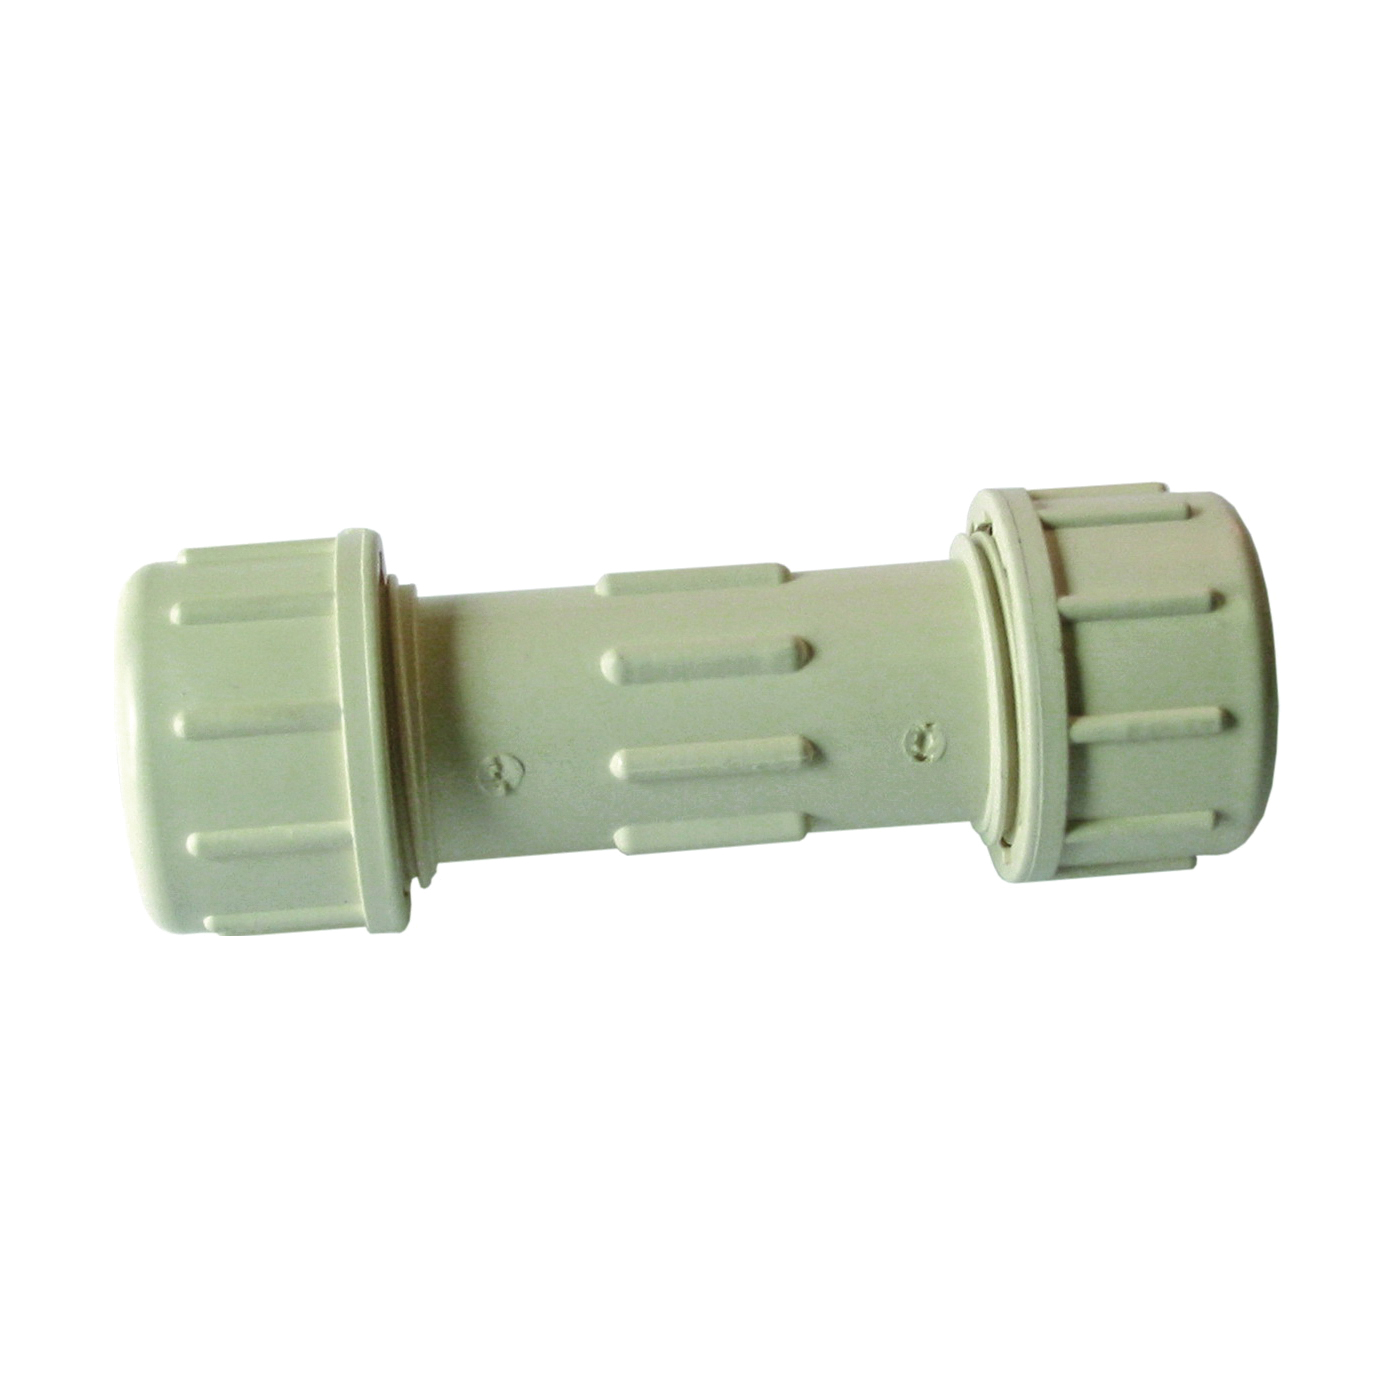 Picture of AMERICAN VALVE P600CTS 1 Compression Coupler, 1 in, Compression, 150 psi Pressure